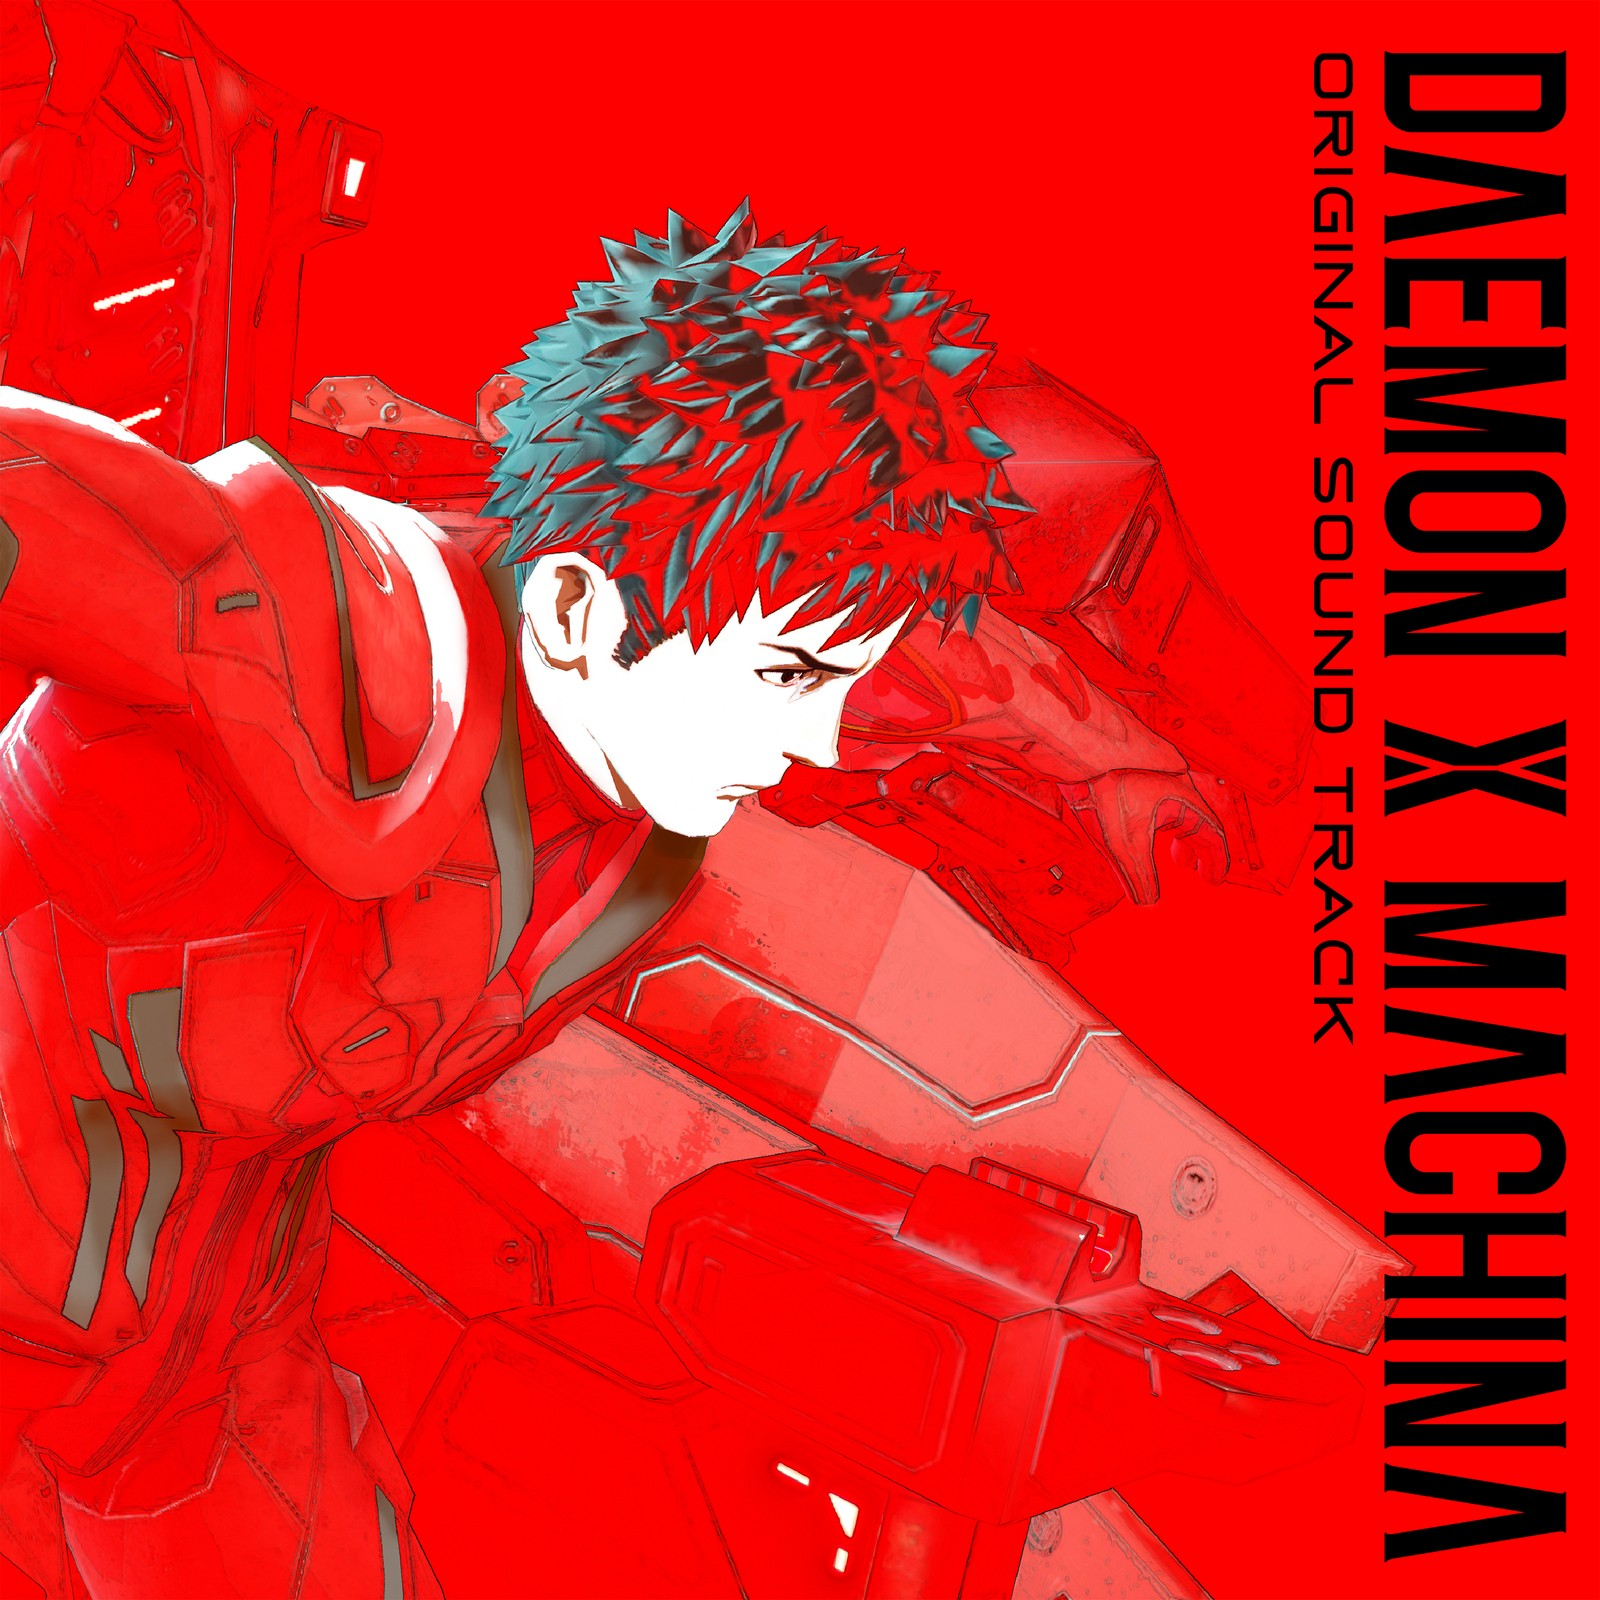 VA – DAEMON X MACHINA Original Soundtrack [Ototoy FLAC 24bit/96kHz]